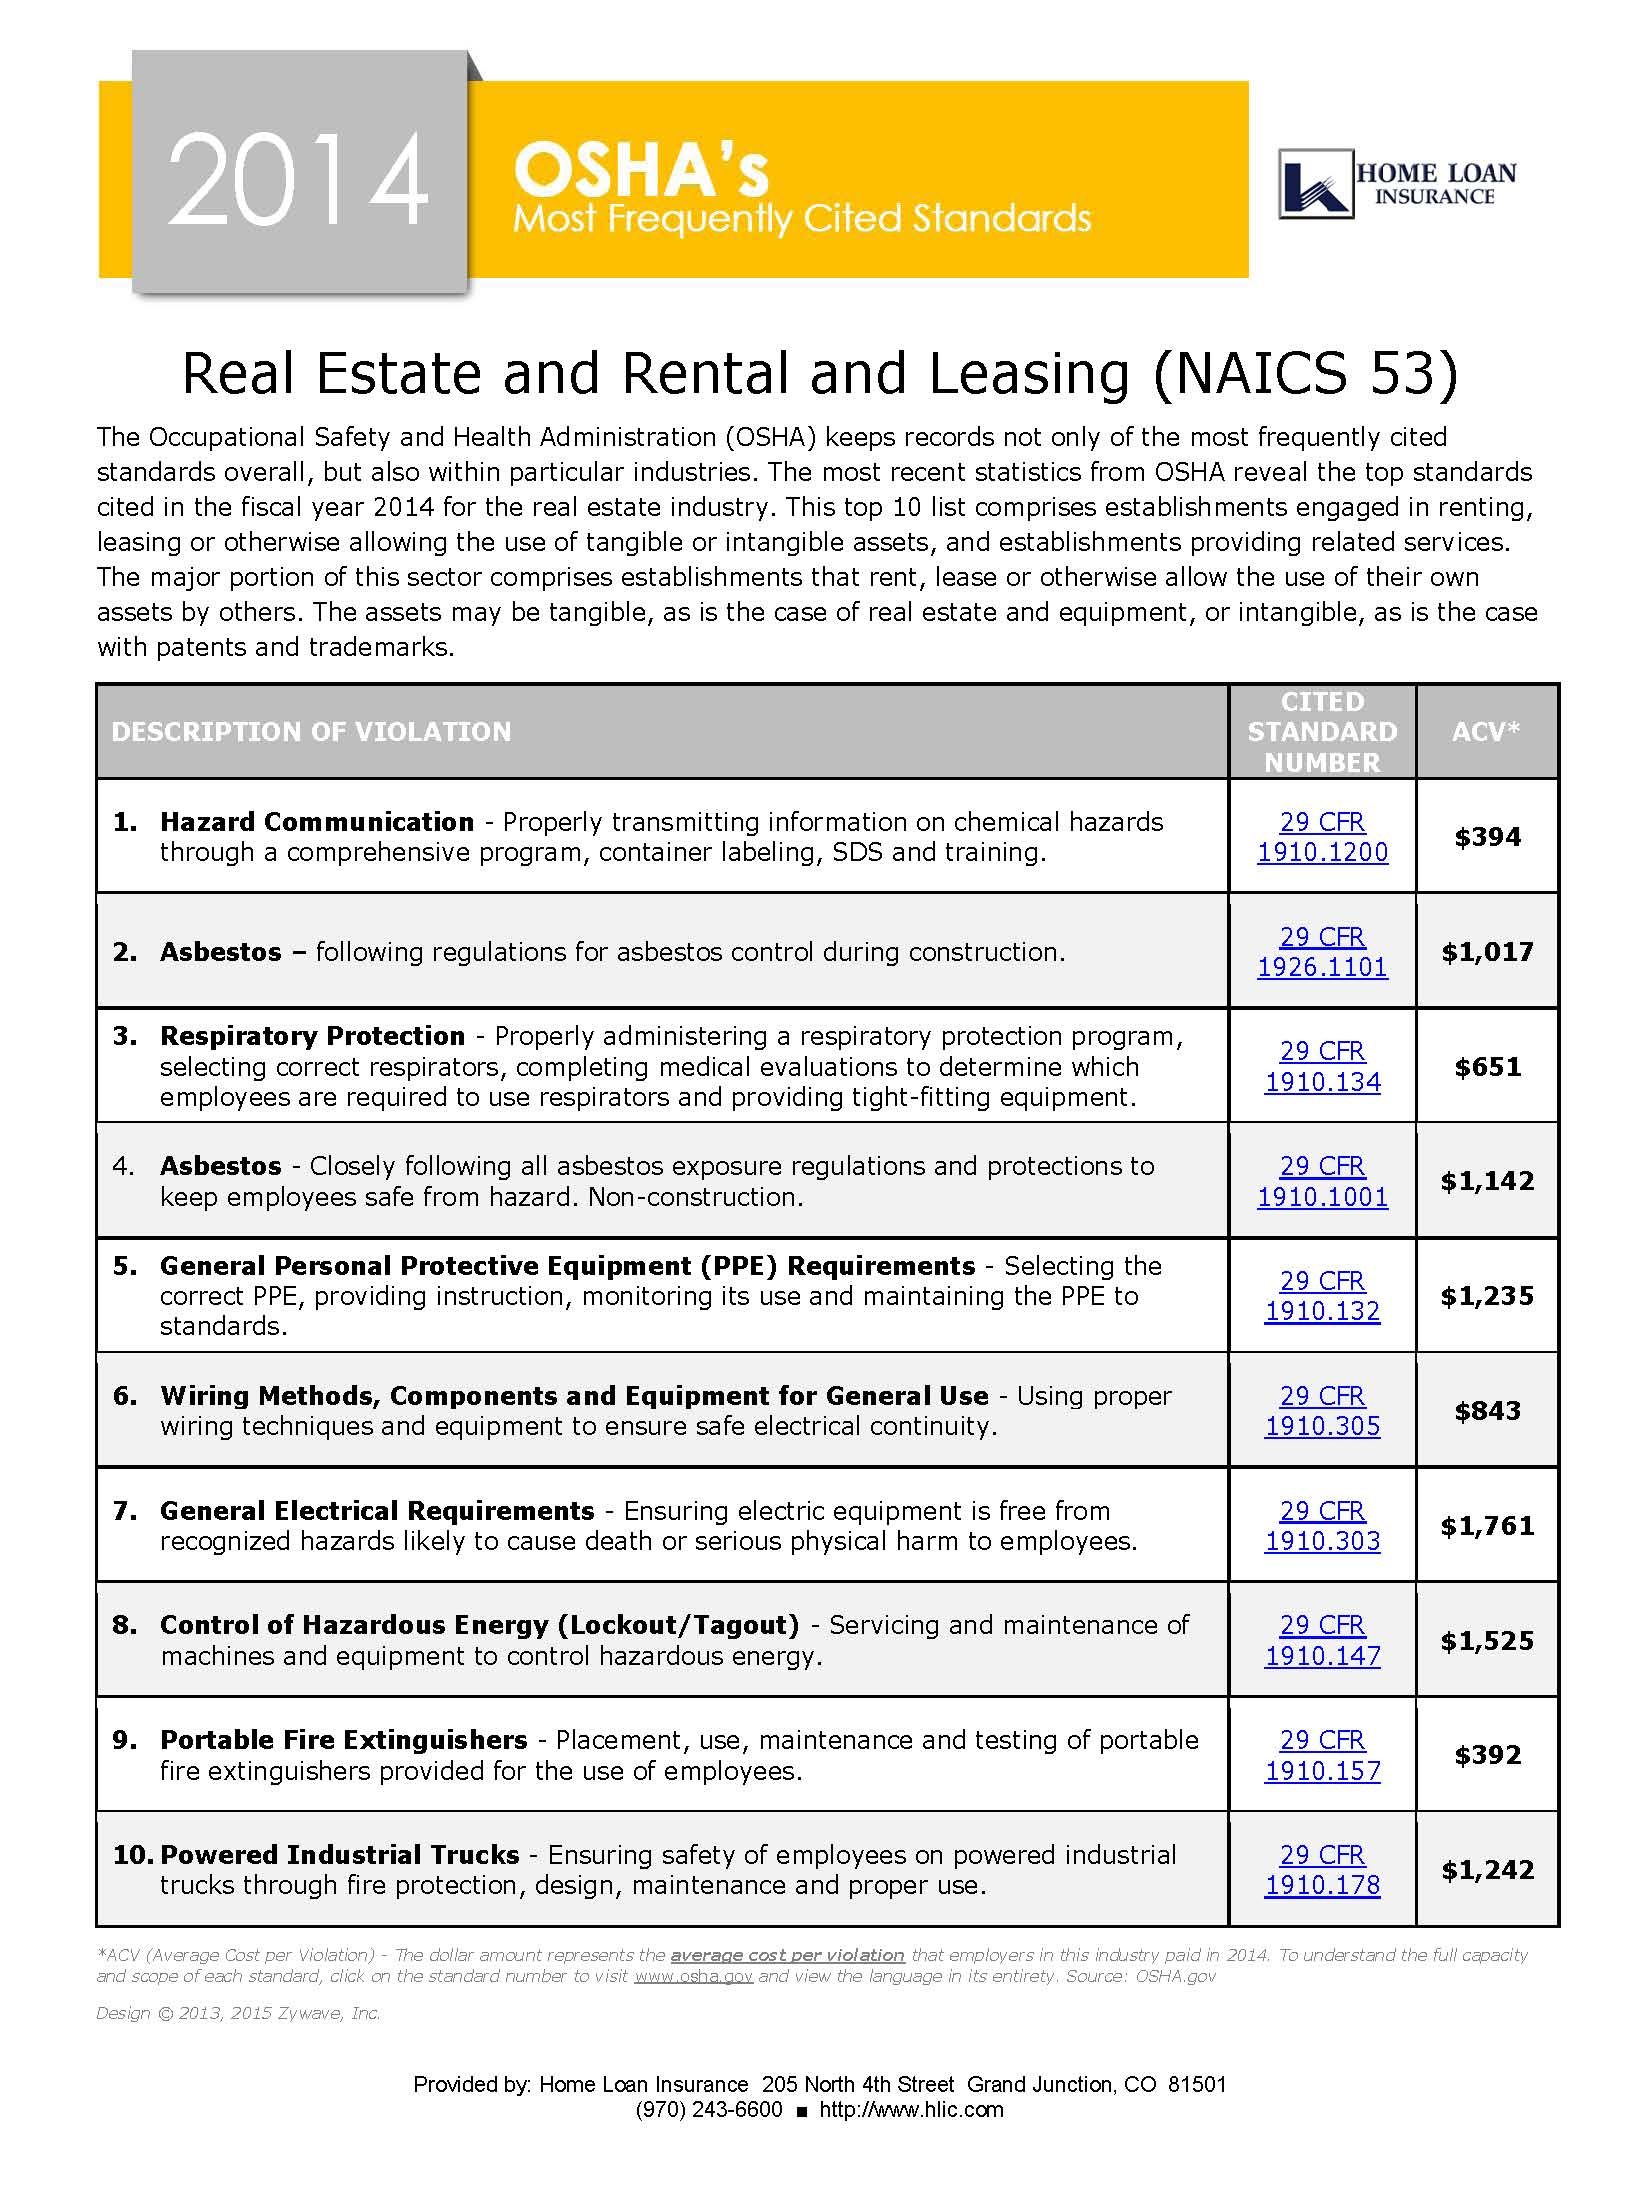 OSHA Real Estate and Rental and Leasing most frequently cited